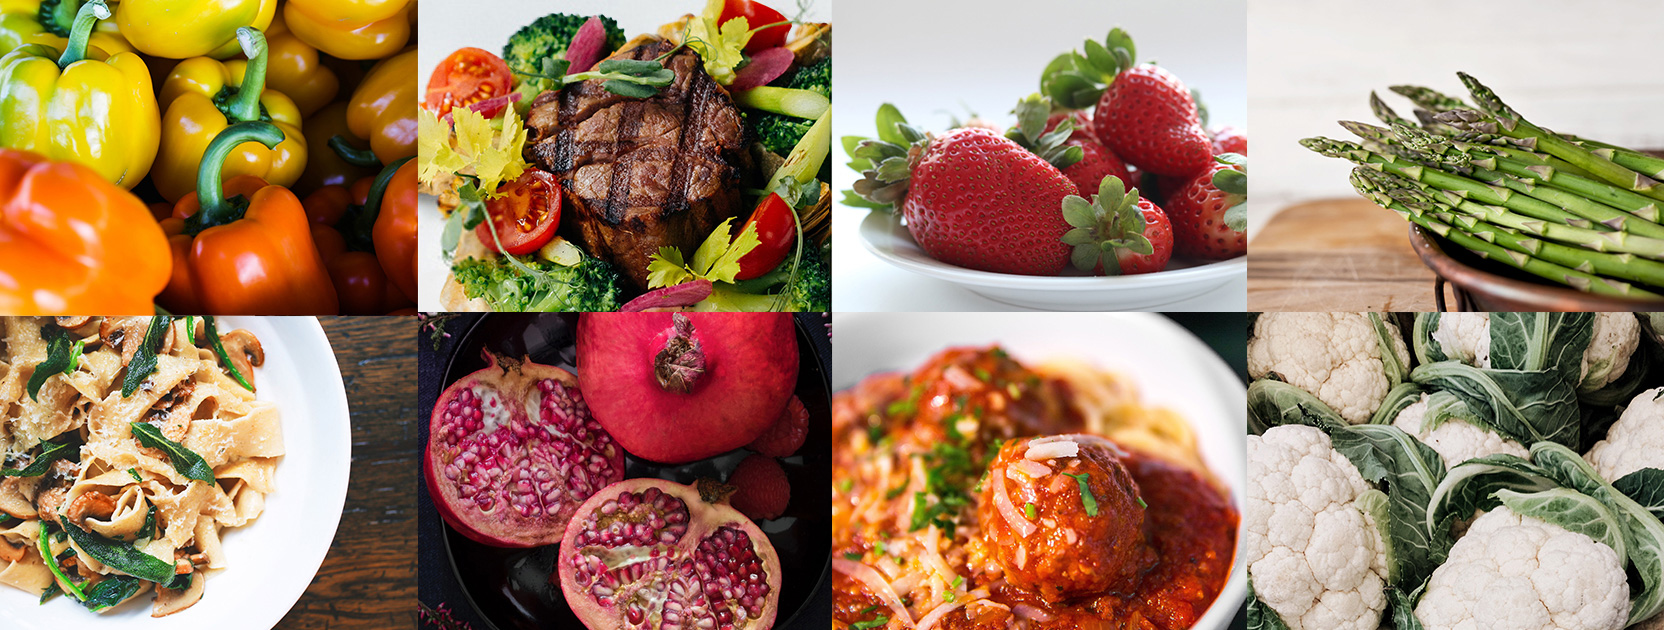 A collage of fresh produce, grilled steak, and pasta dishes.A collage of fresh produce, grilled steak, and pasta dishes.